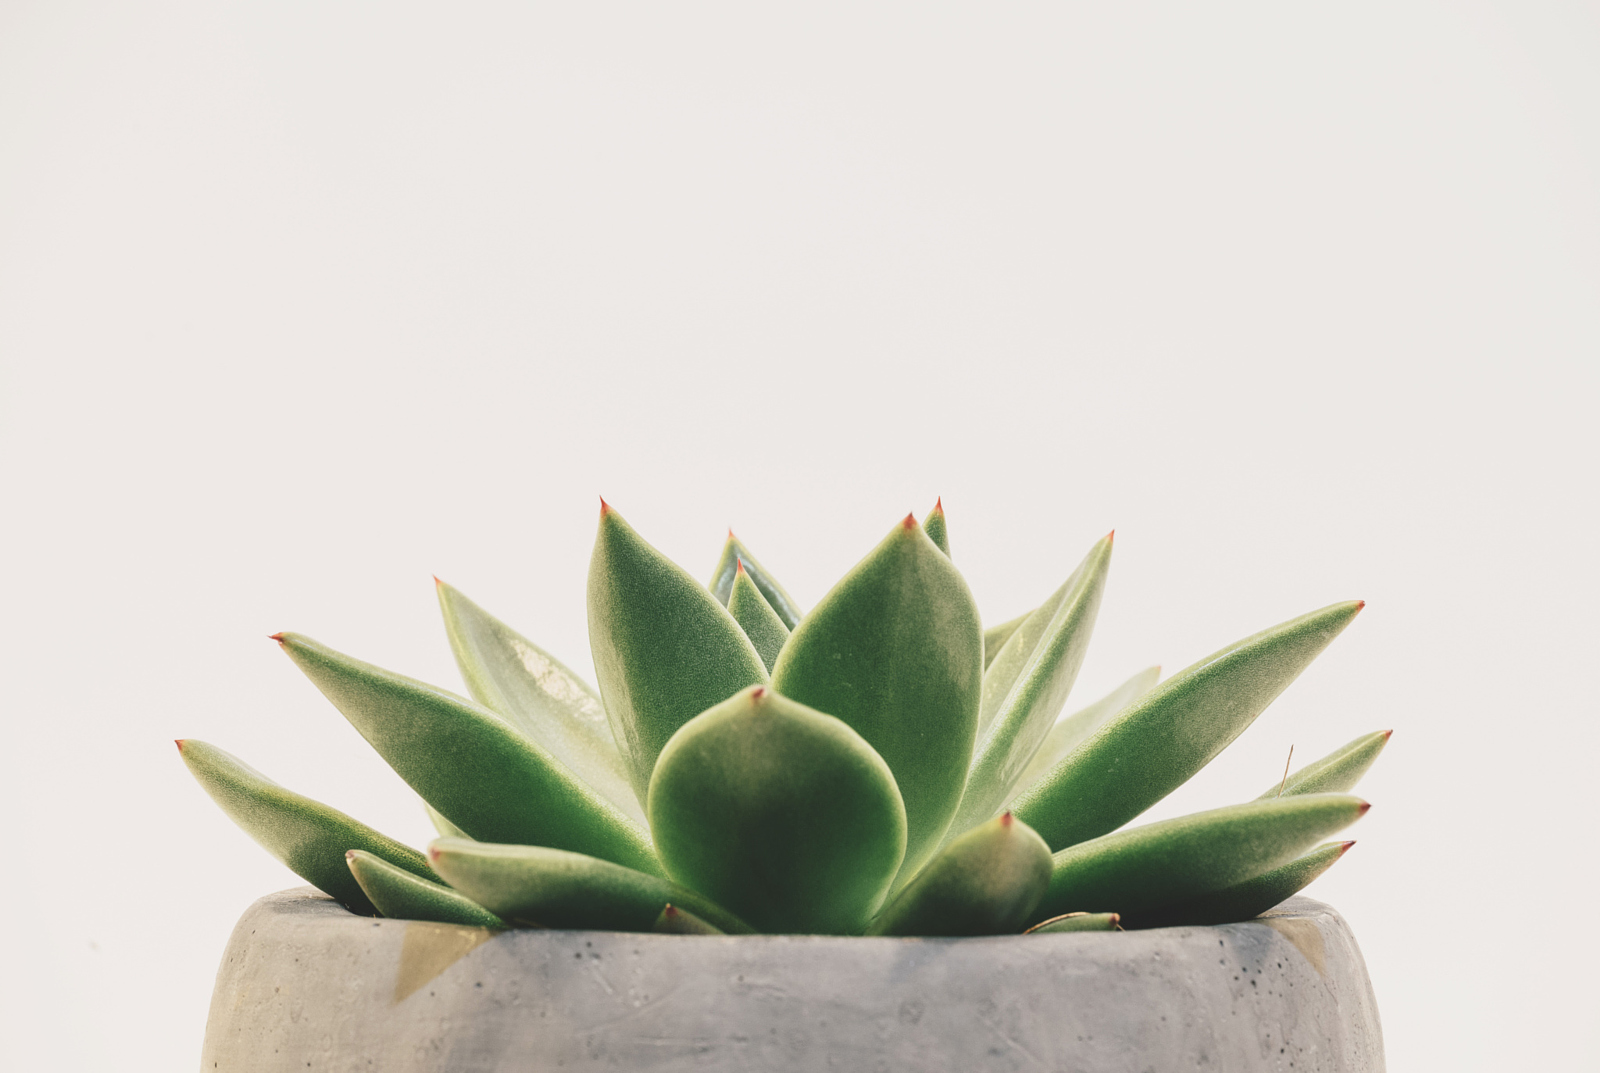 Cute Cactus Wallpaper Macbook 500px Blog 187 187 Grab Your Audience With Clean Minimalist